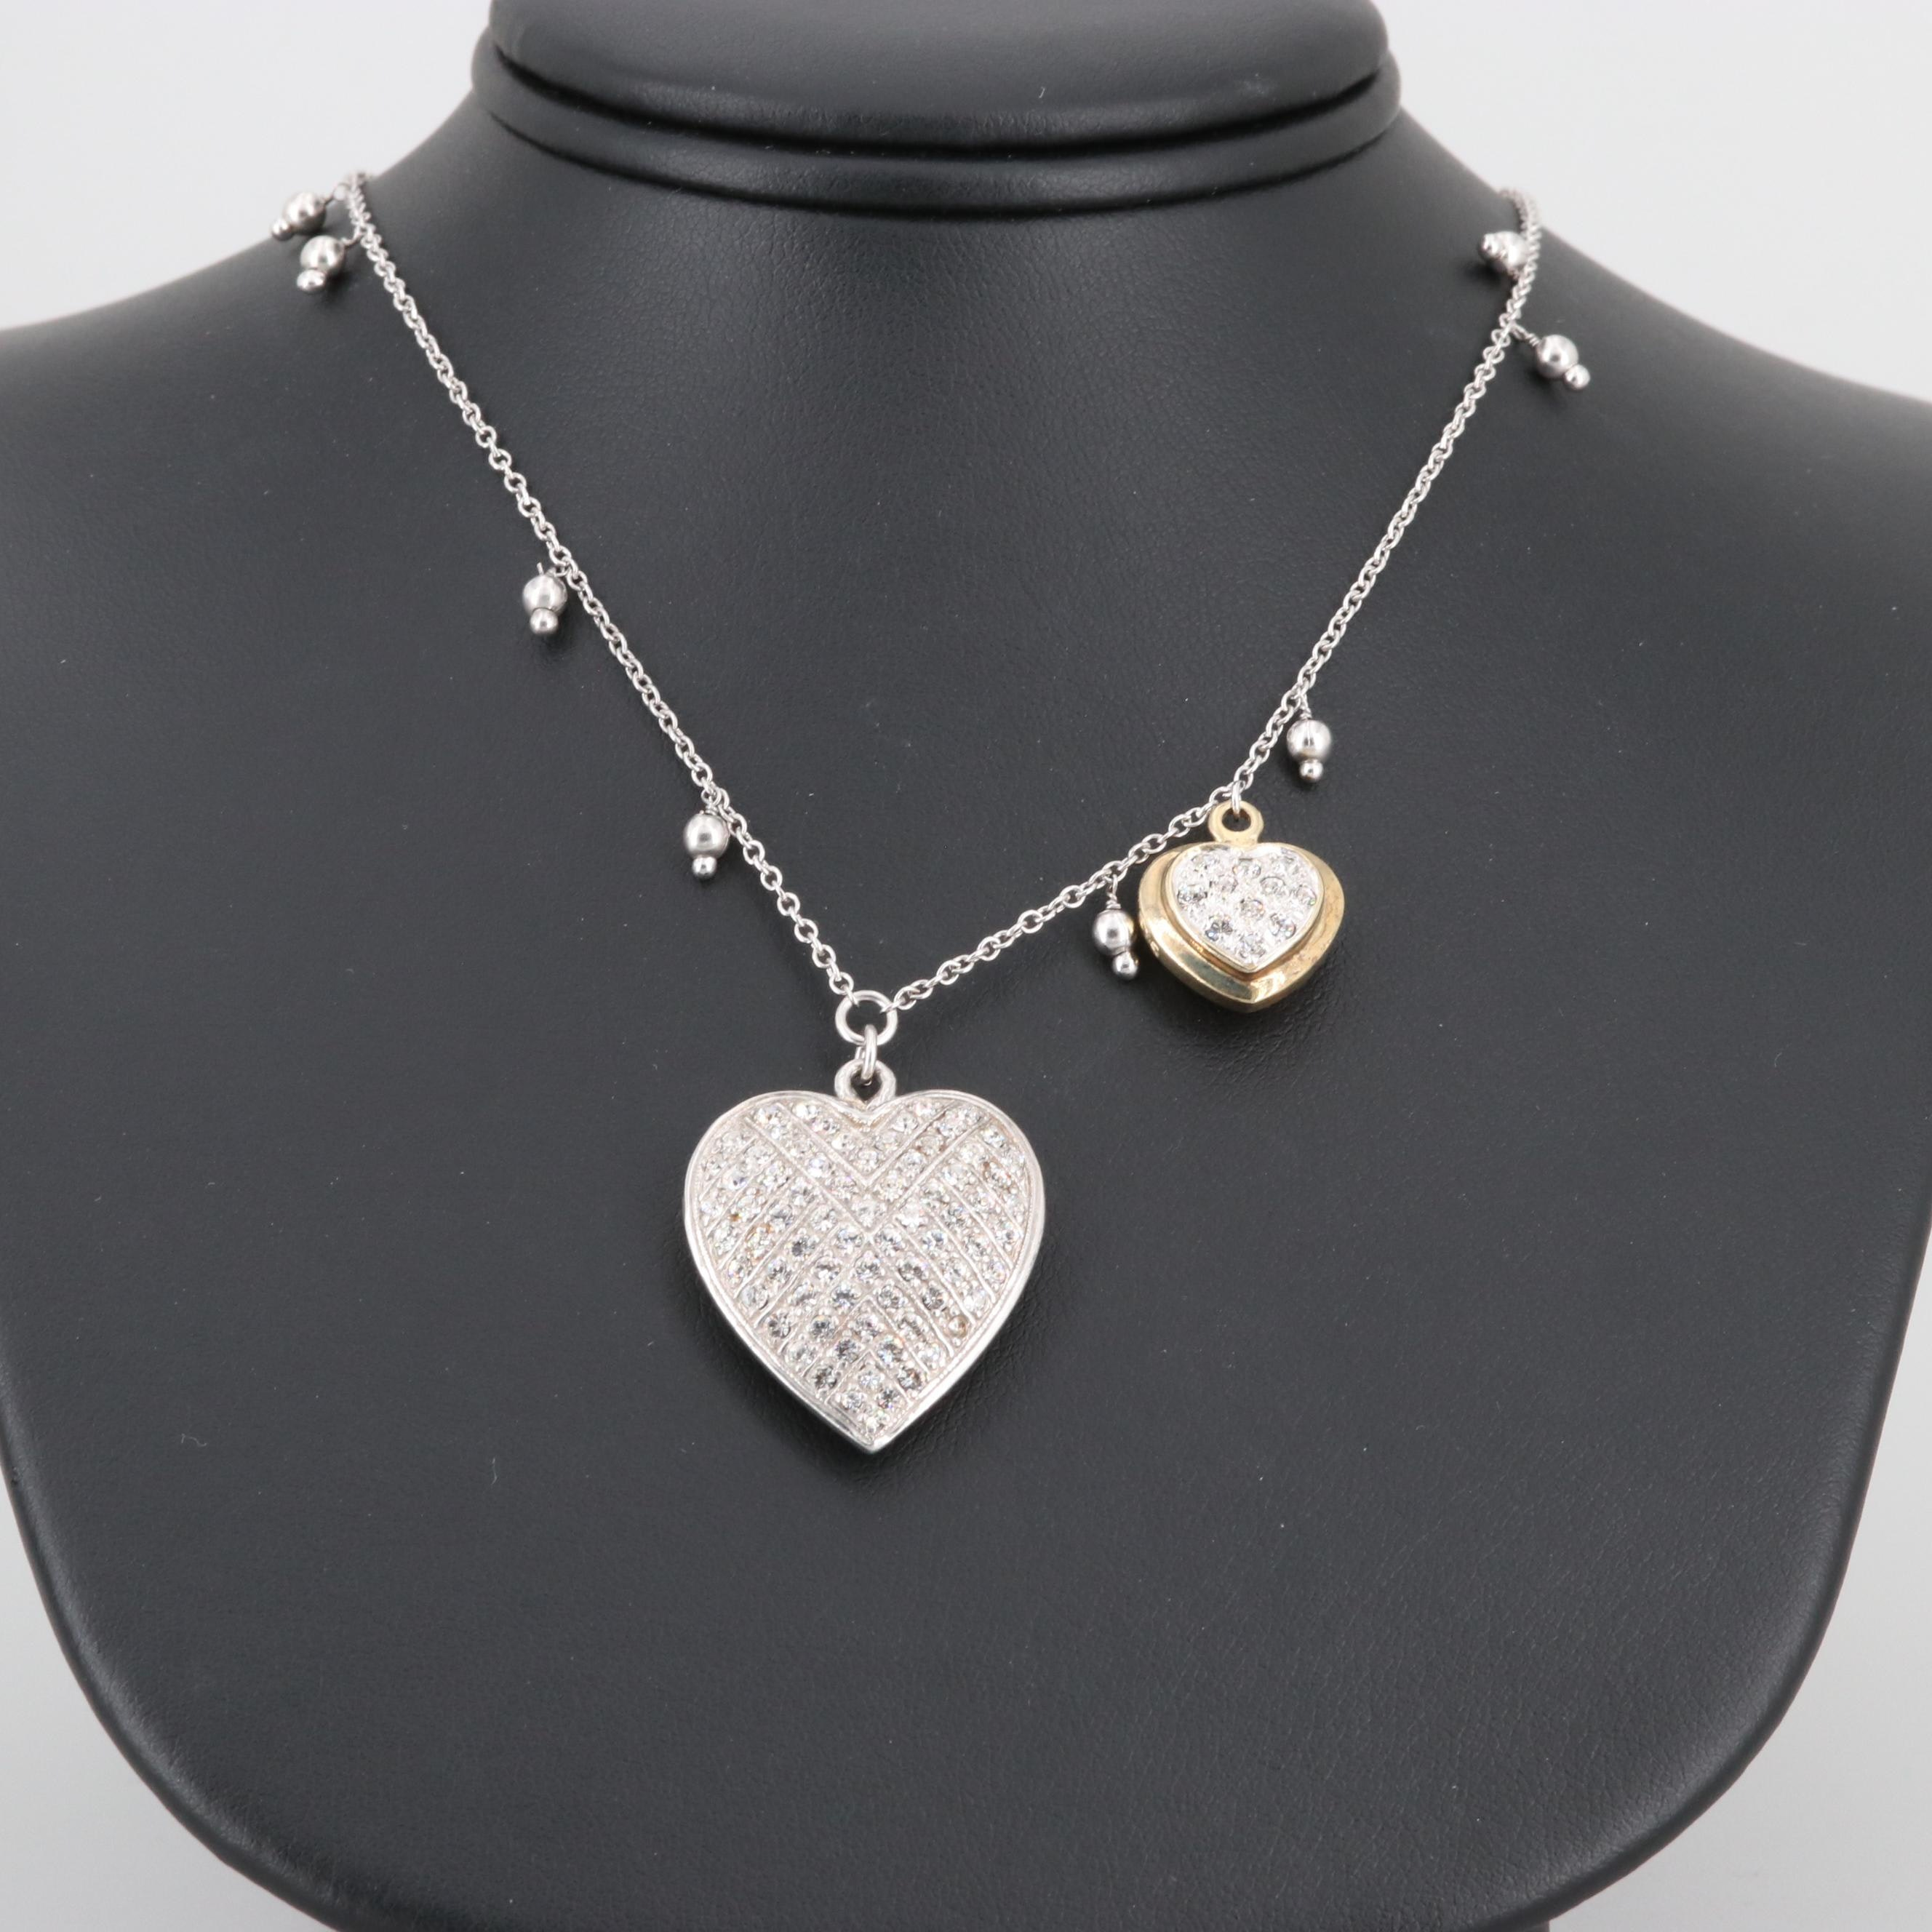 Gold Wash on Sterling Silver Foilbacked Glass Heart Pendant Necklace